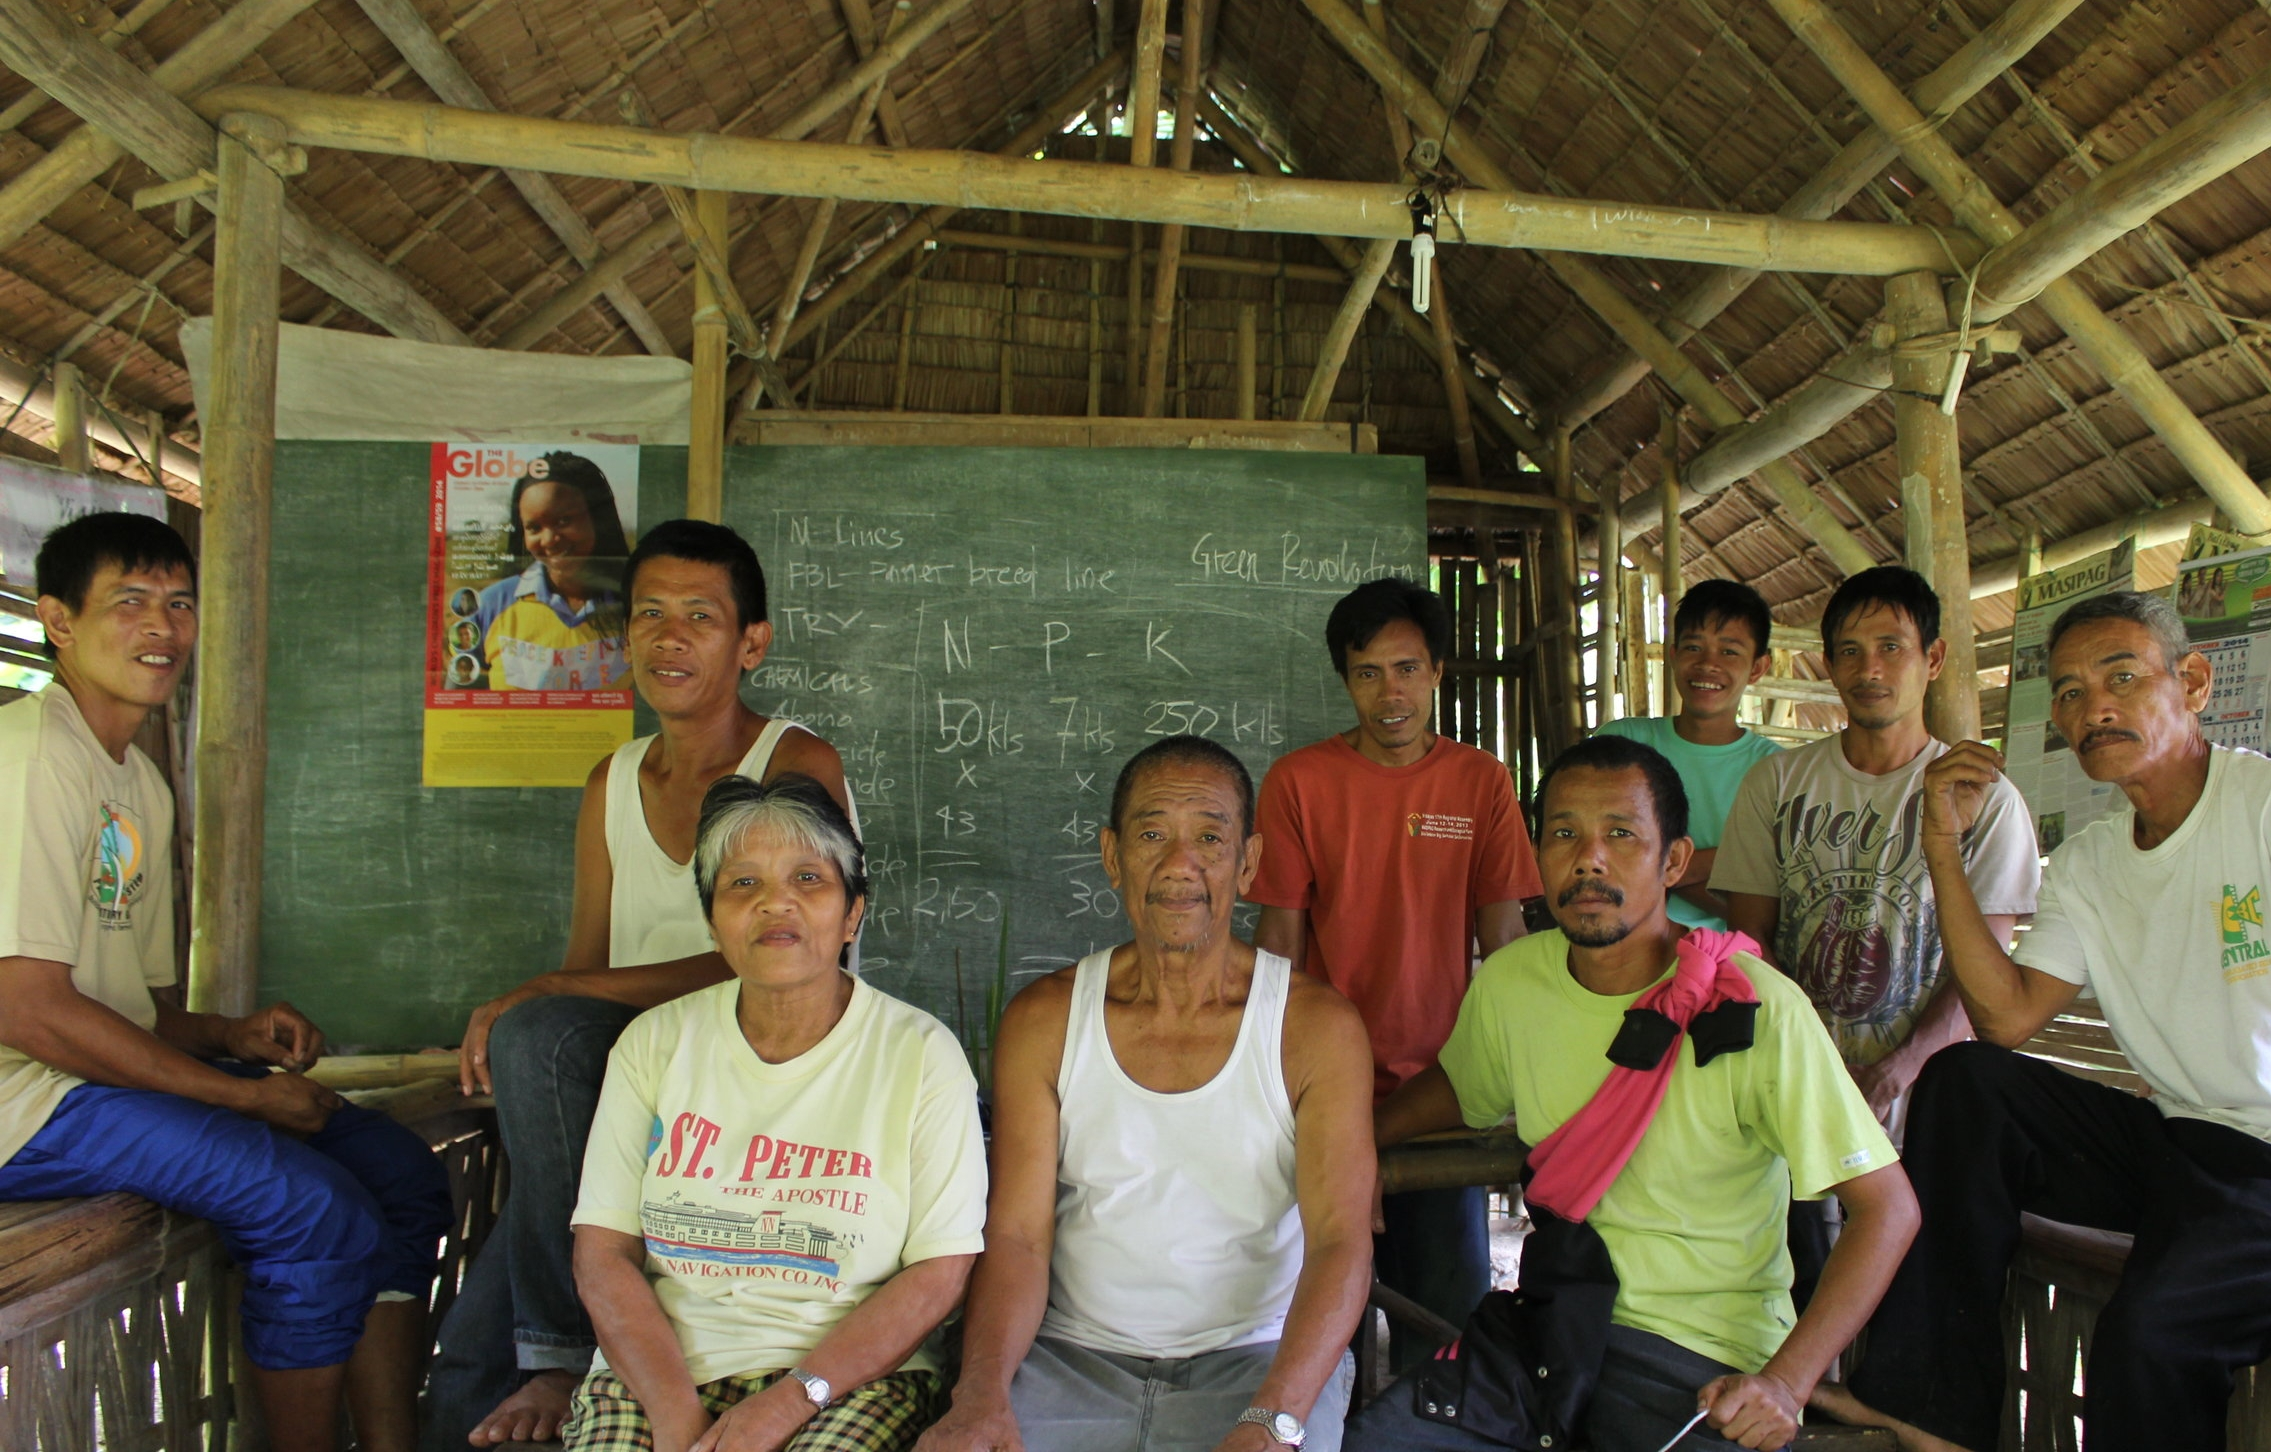 Community Empowerment and Good Governance - We believe a strong community is one where everyone has a voice and a choice. We work with community groups and engage local government to grow meaningful, participatory local governance.